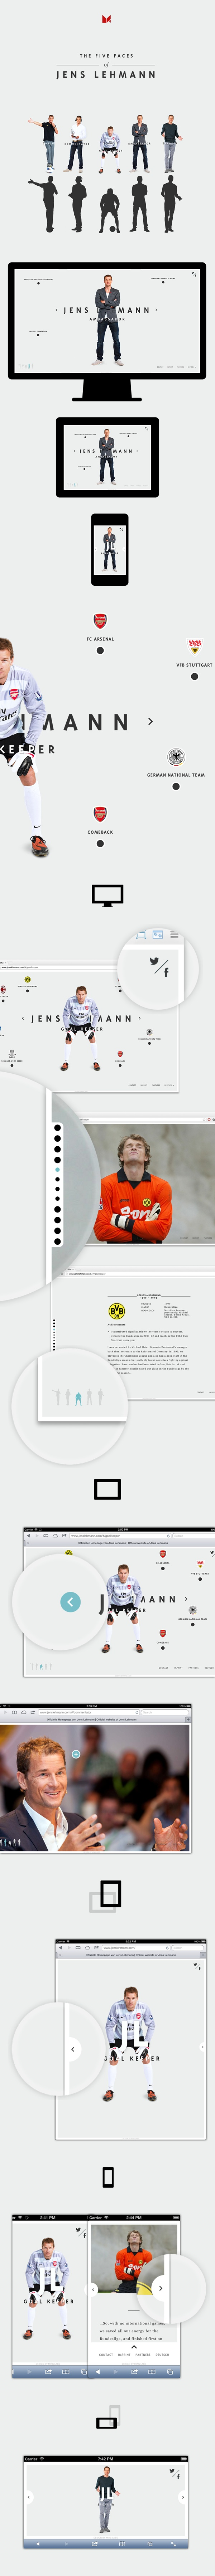 New Website for Jens Lehmann (former German National Goalkeeper) designed by MING Labs